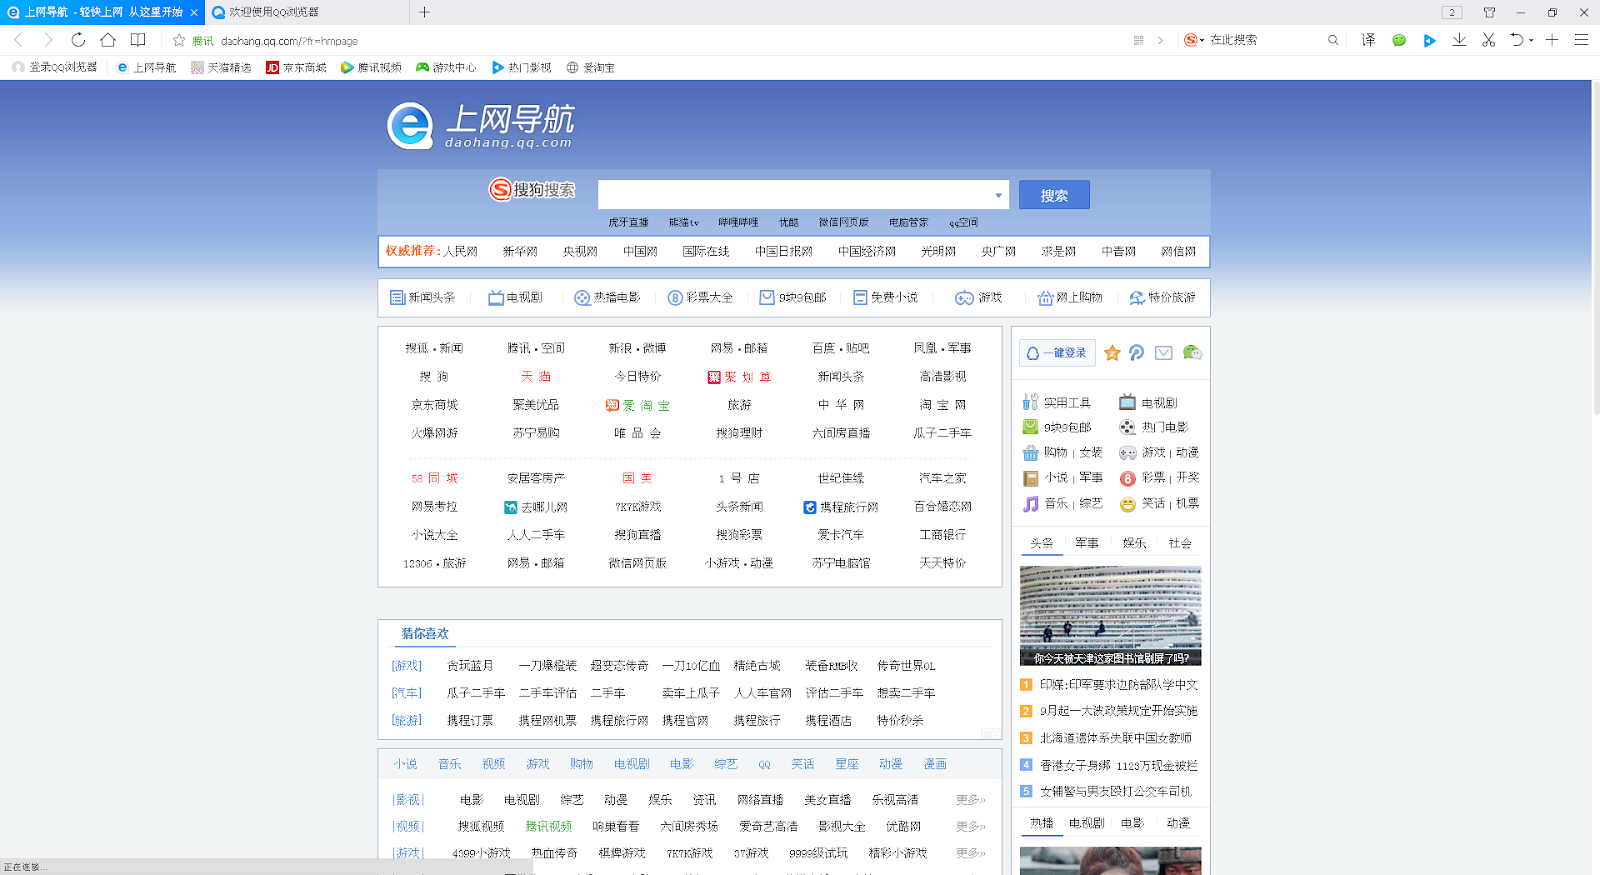 Tencent QQ Web Browser 10.4.2   Operating System Revival